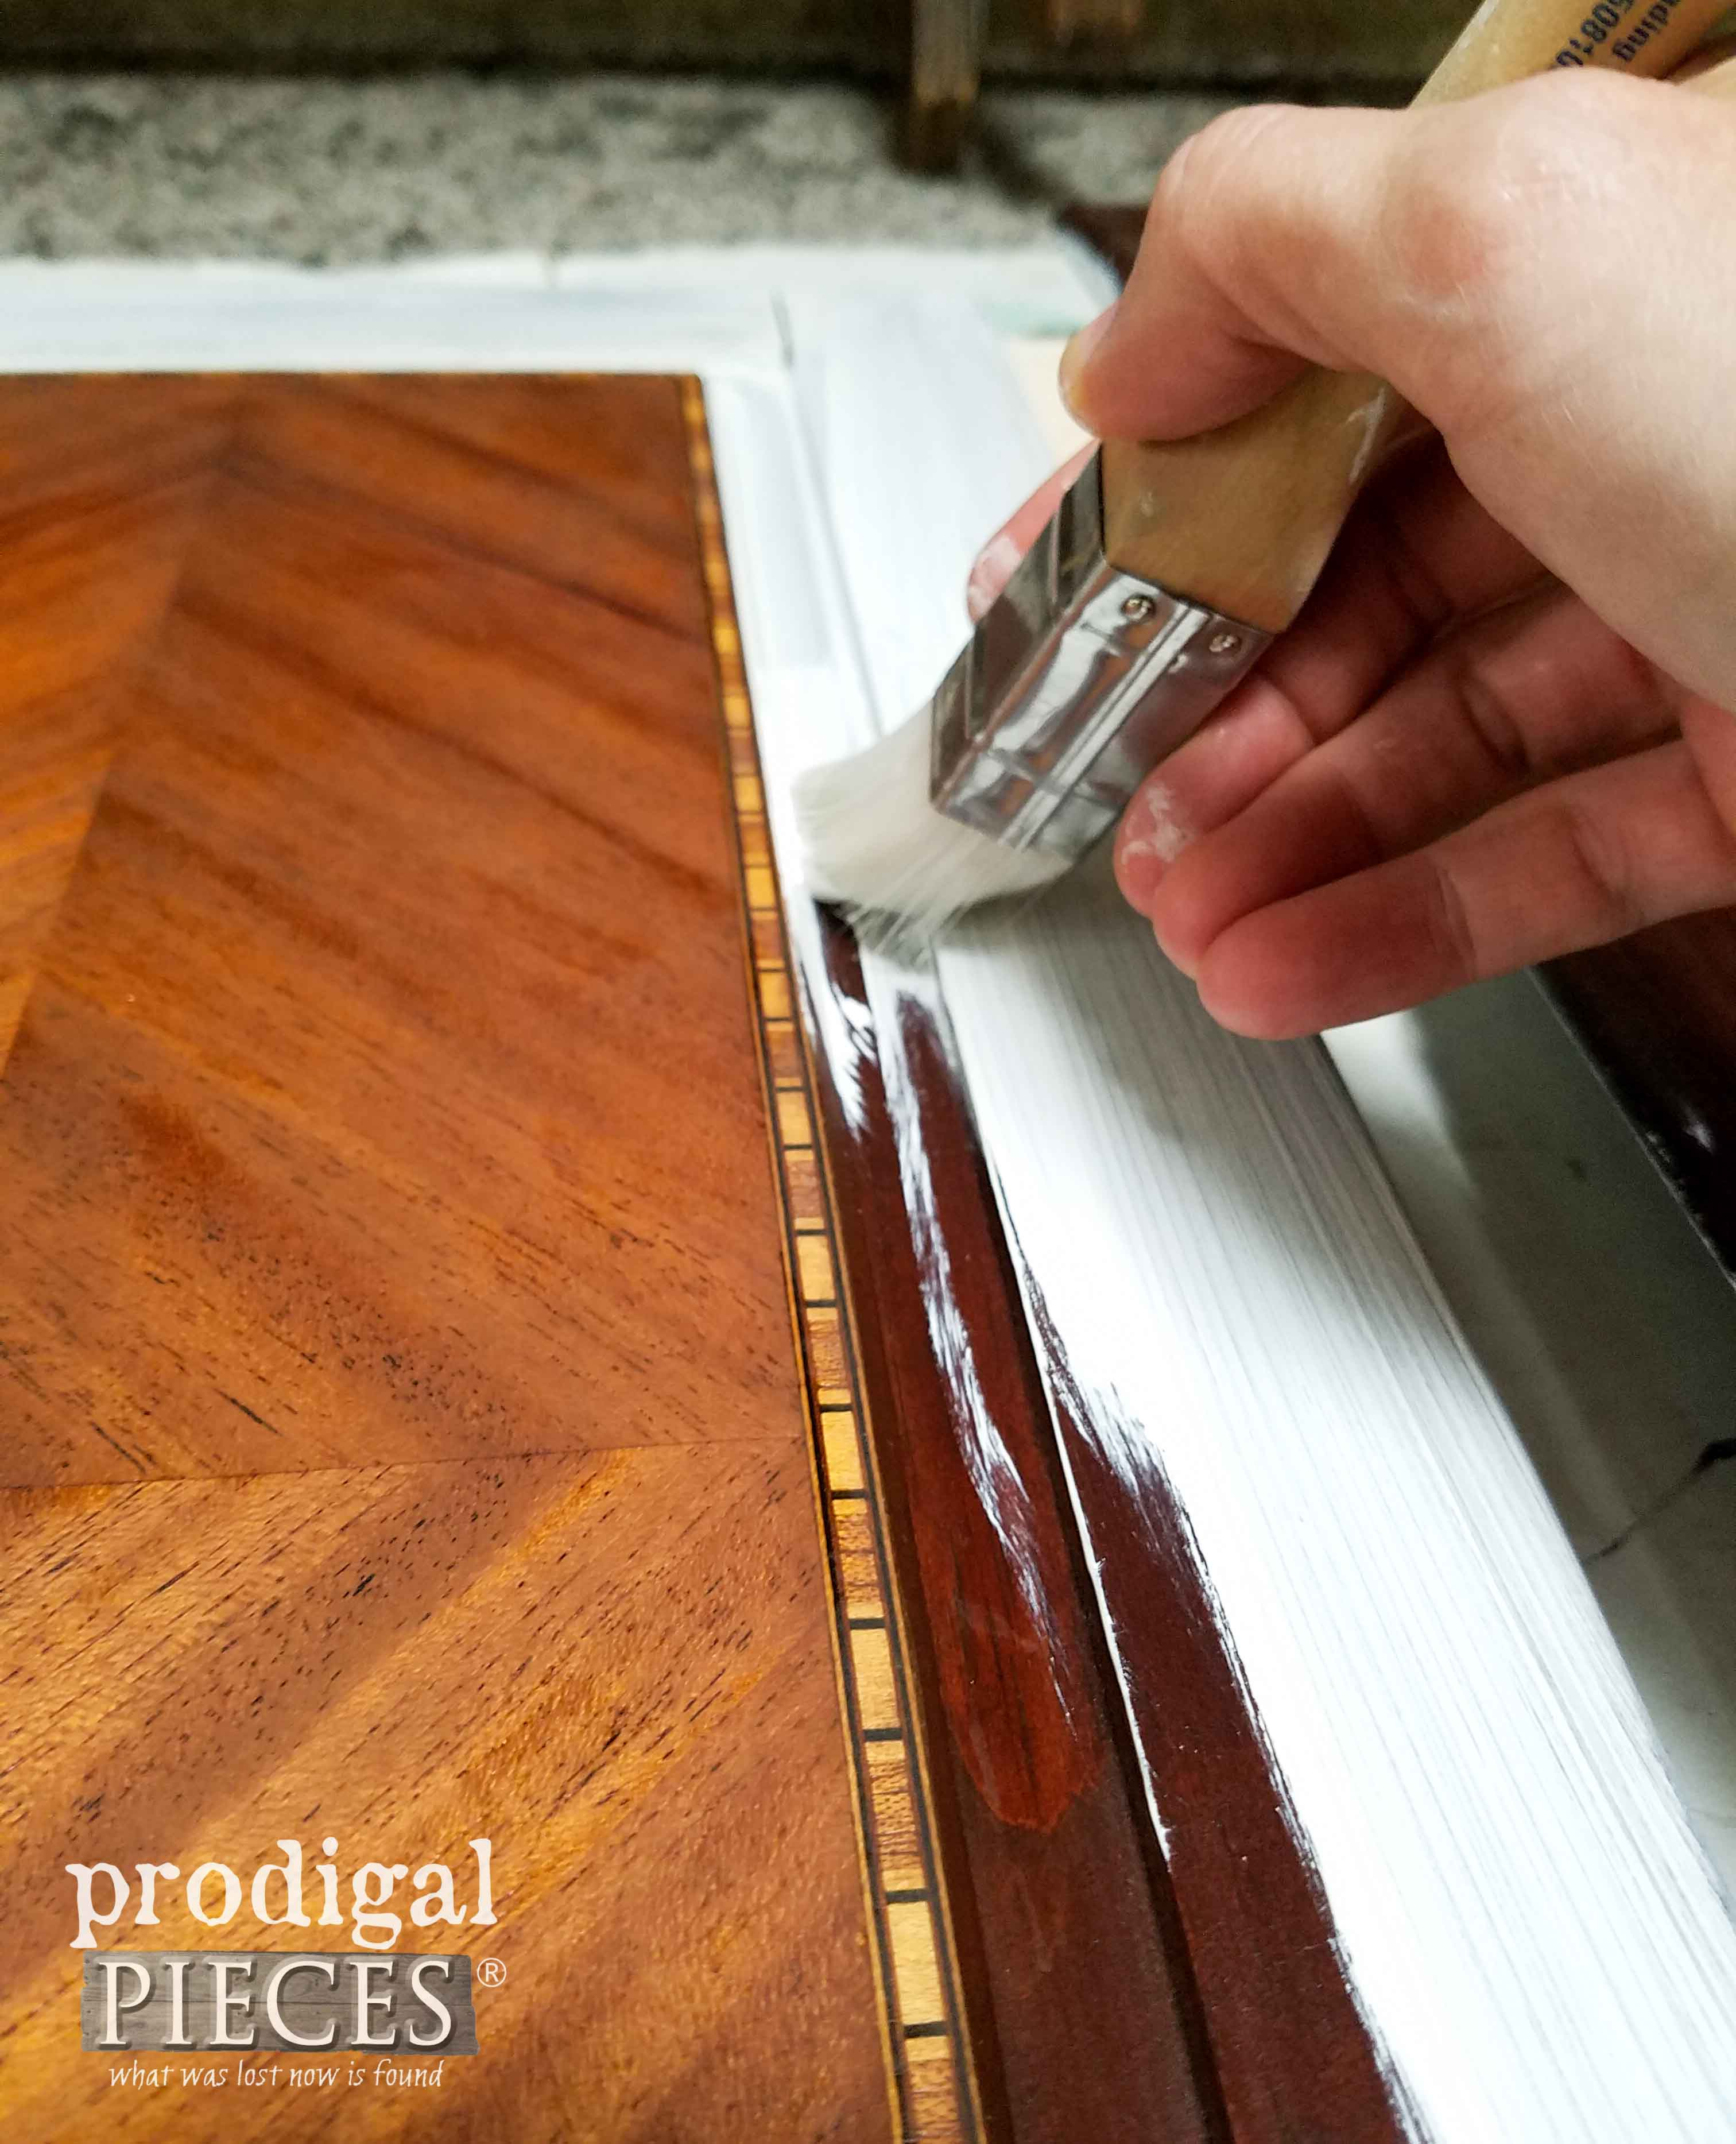 Square Zibra Paint Brush for Straight Lines by Prodigal Pieces | prodigalpieces.com